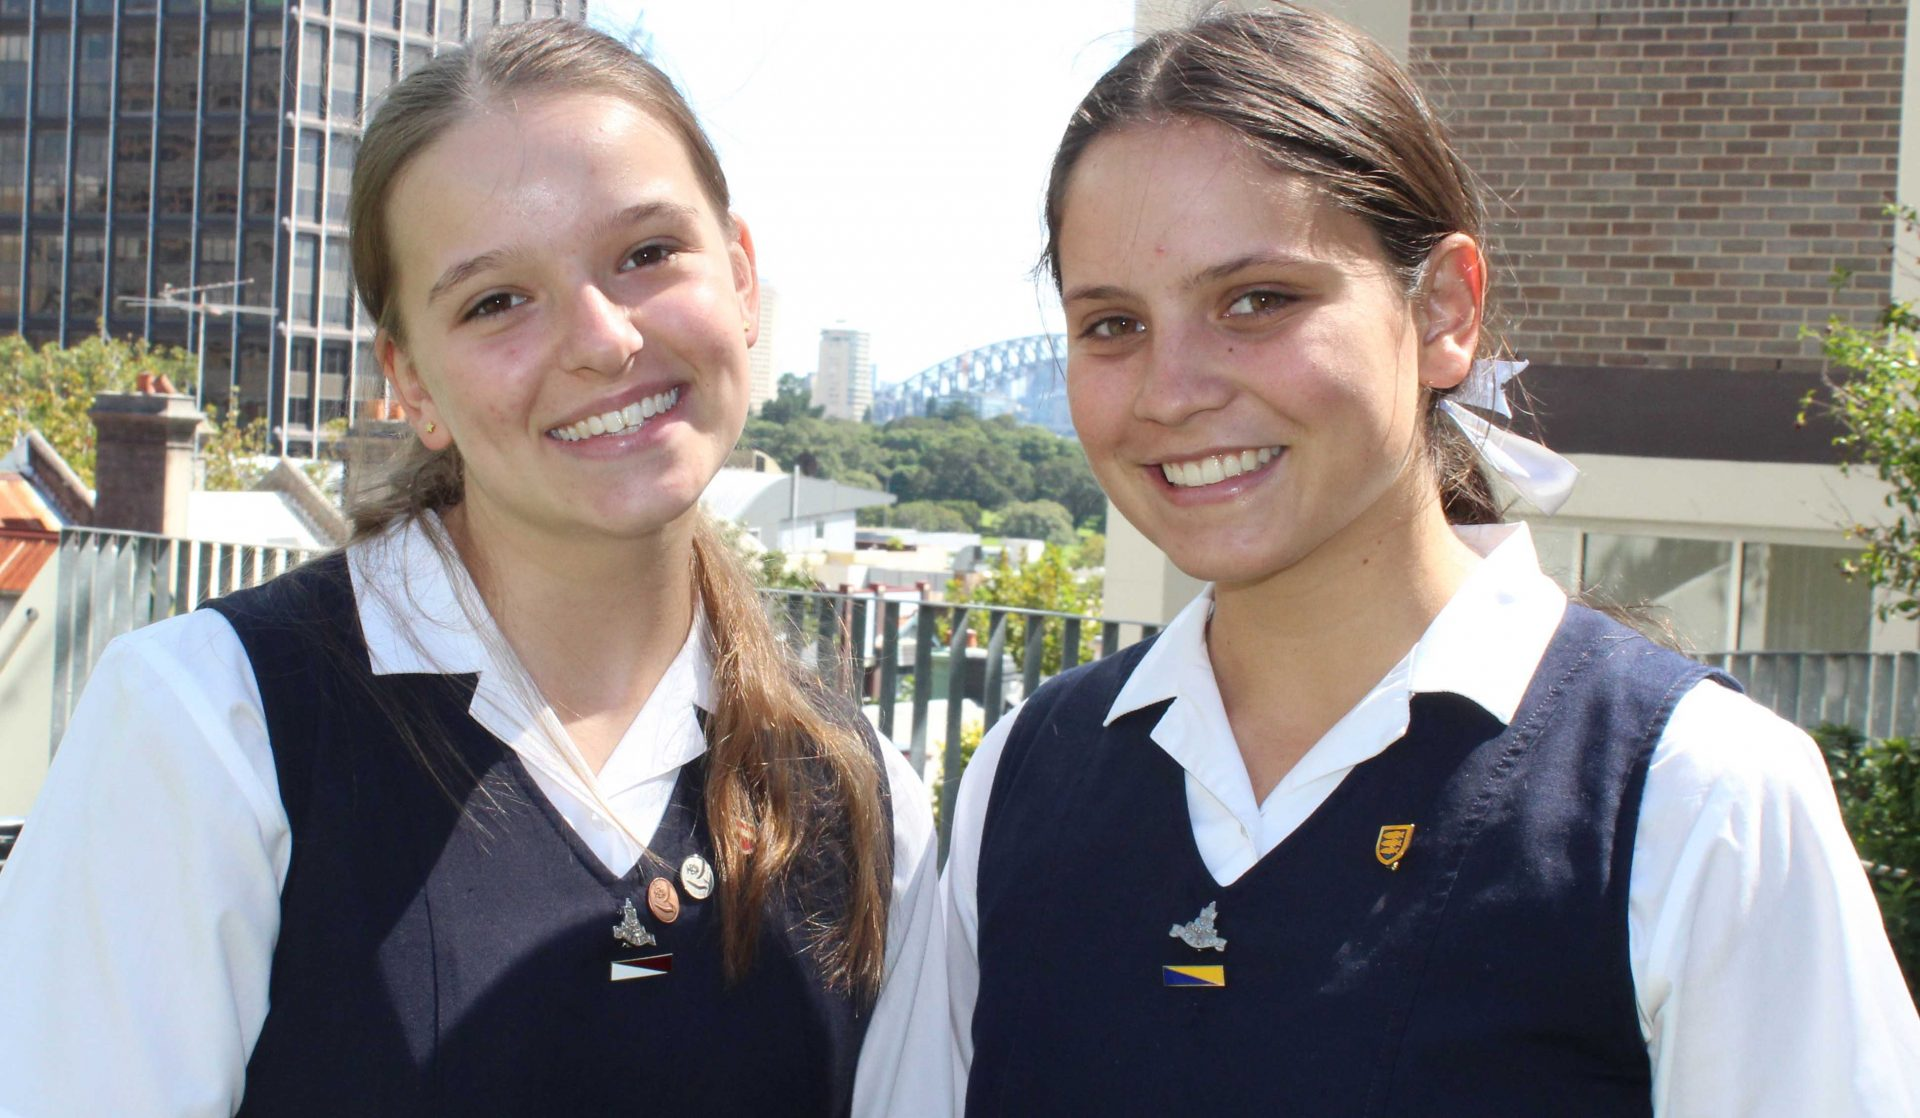 Prefects Share their vision for 2021